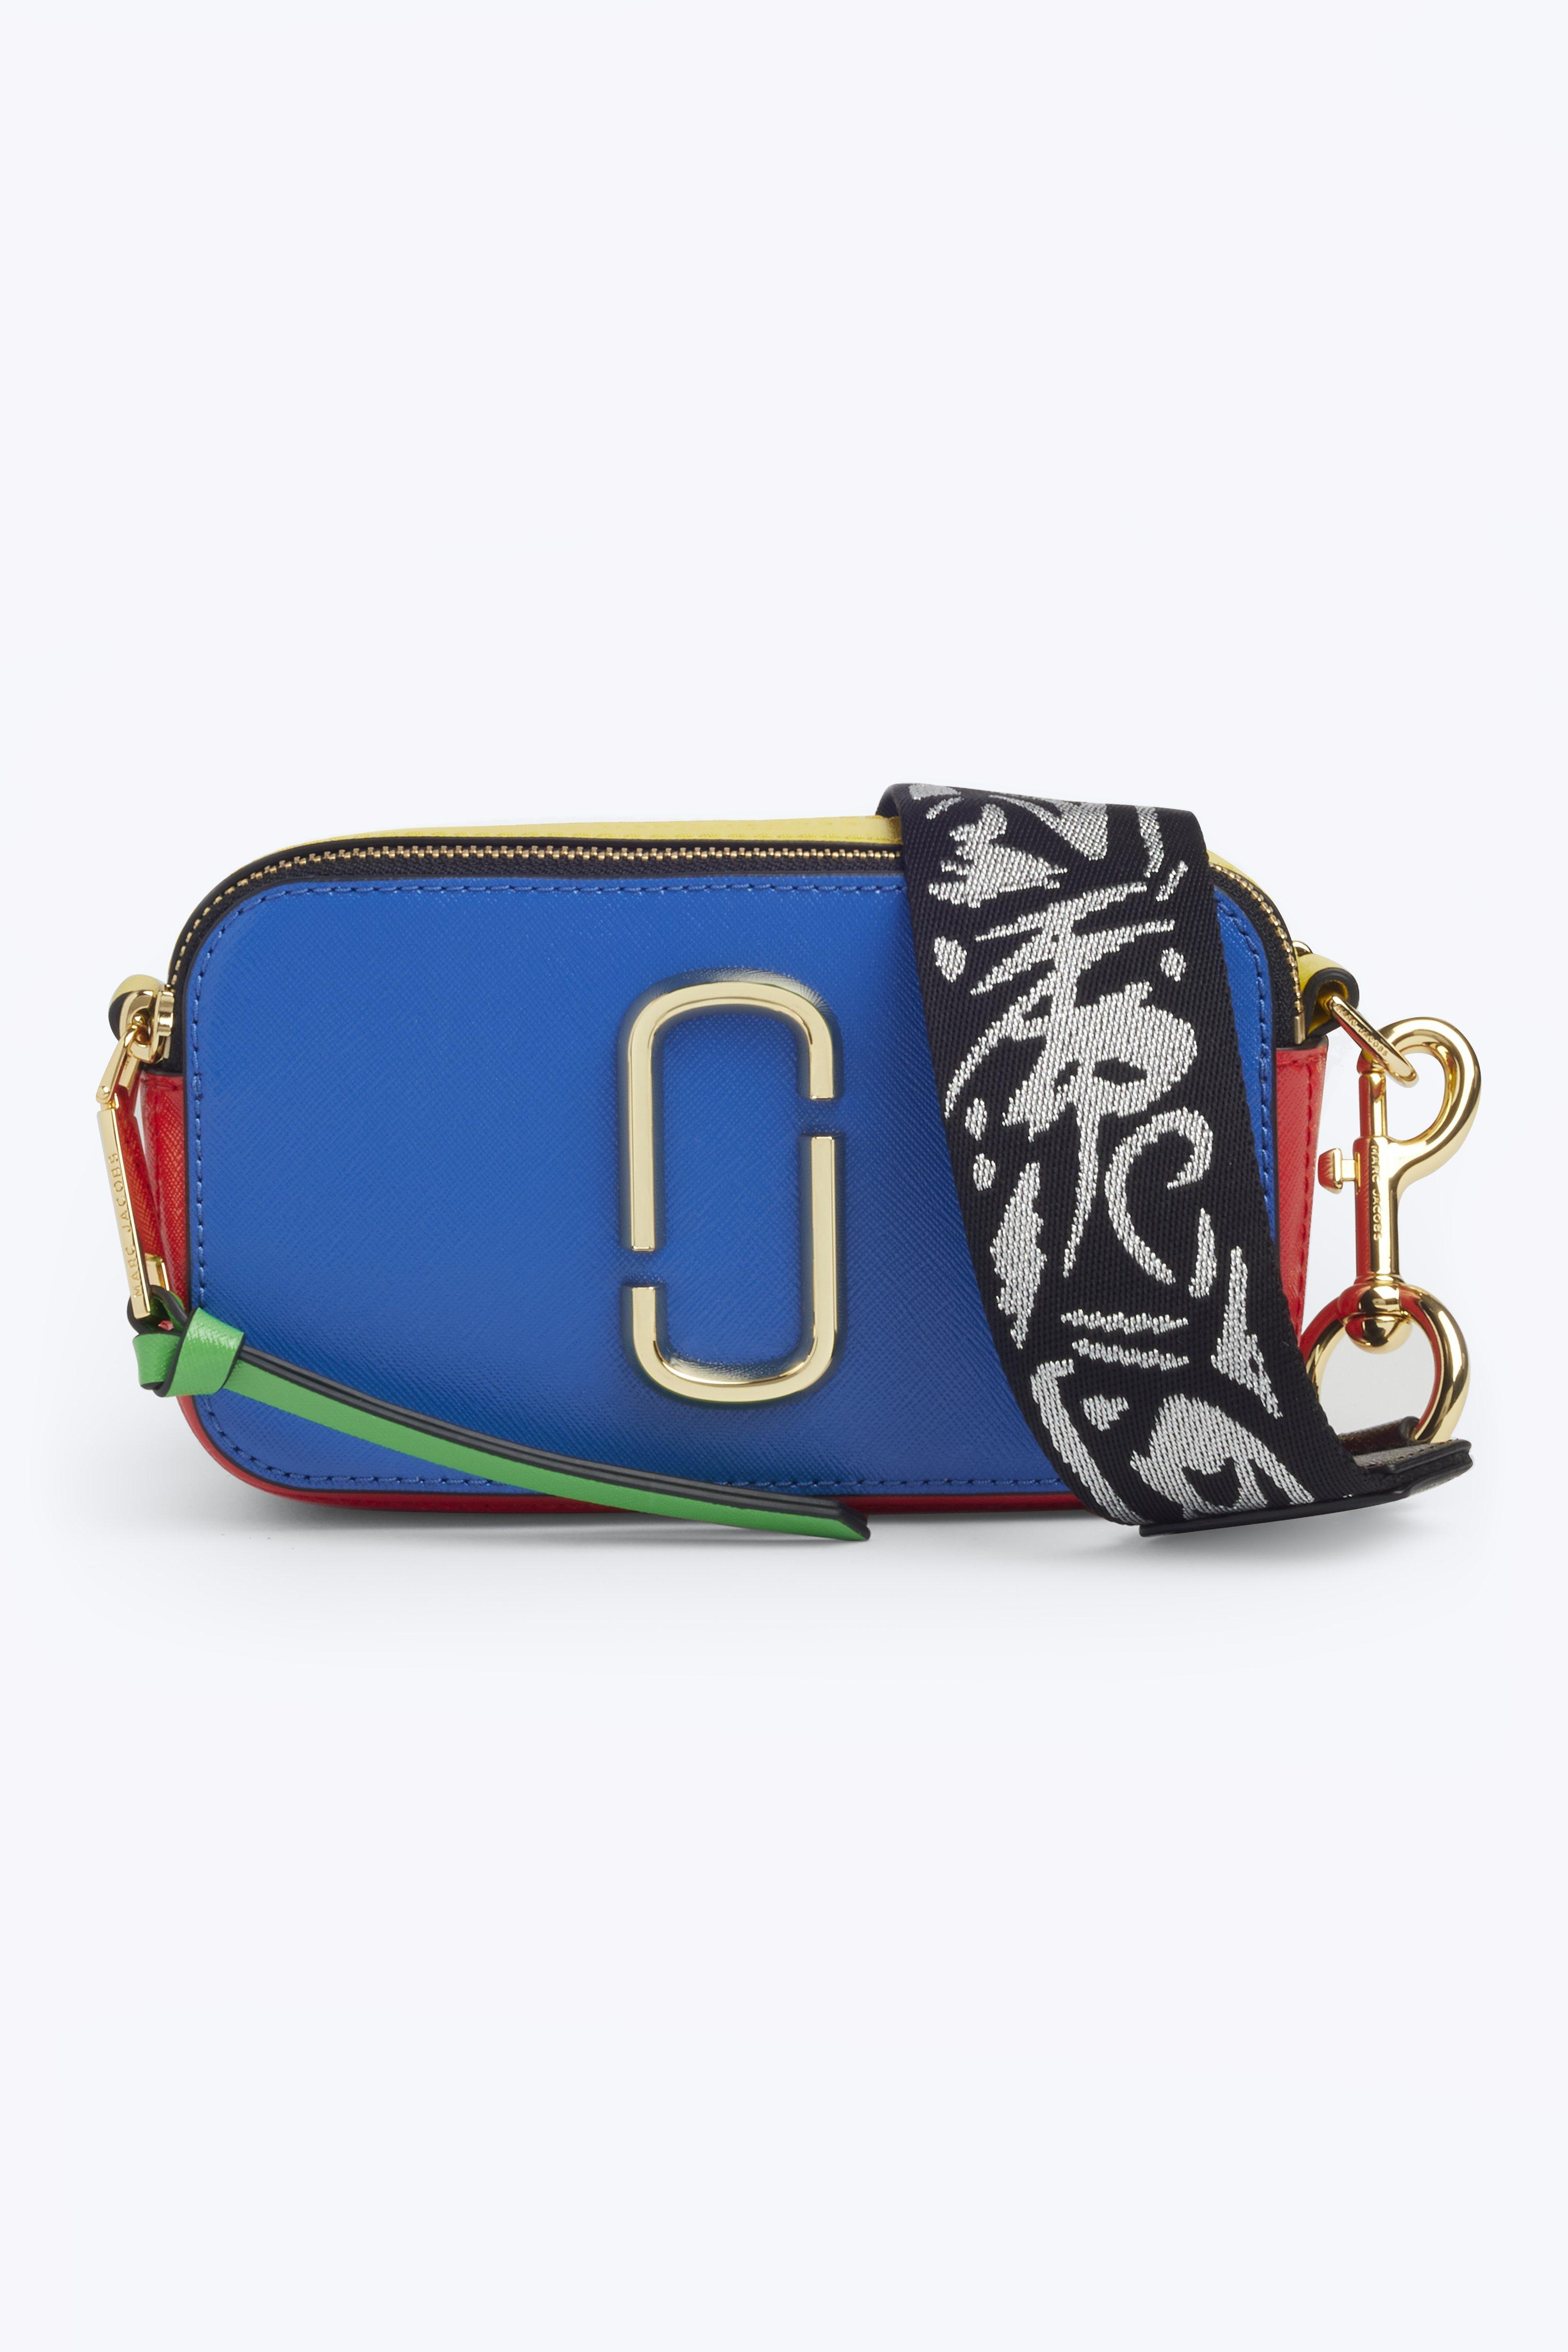 a1824ac3be445 Marc Jacobs Camera Bag Blue | Stanford Center for Opportunity Policy ...